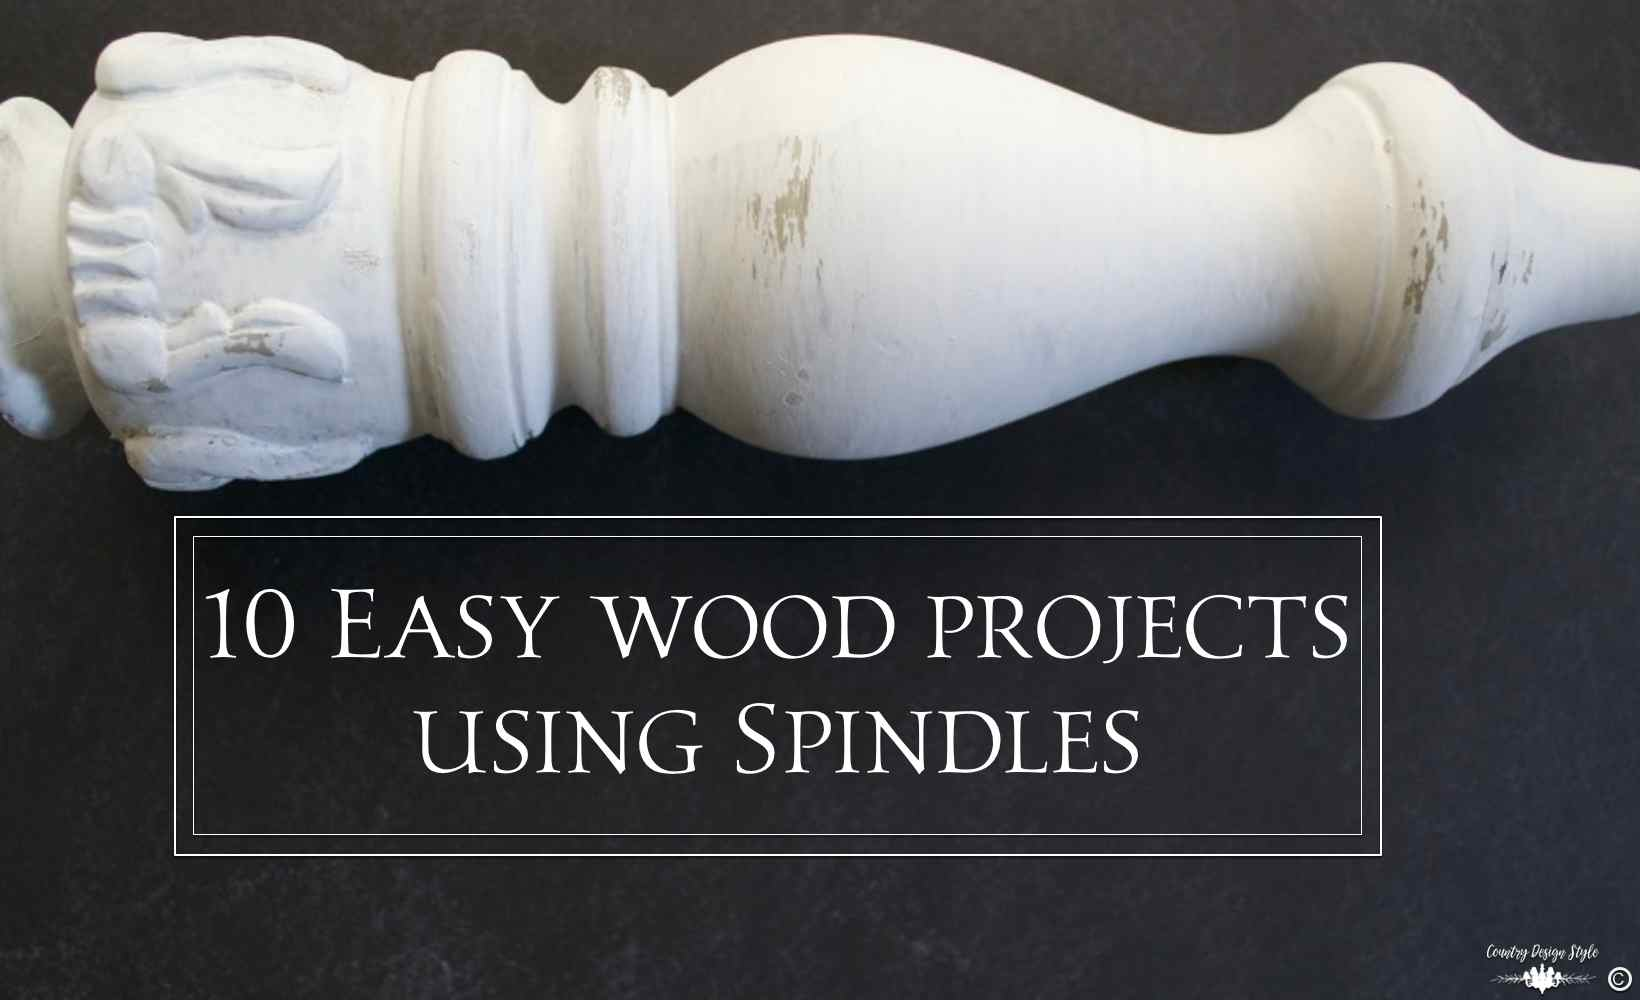 10 easy wood projects using wood spindles   Country Design Style   countrydesignstyle.com